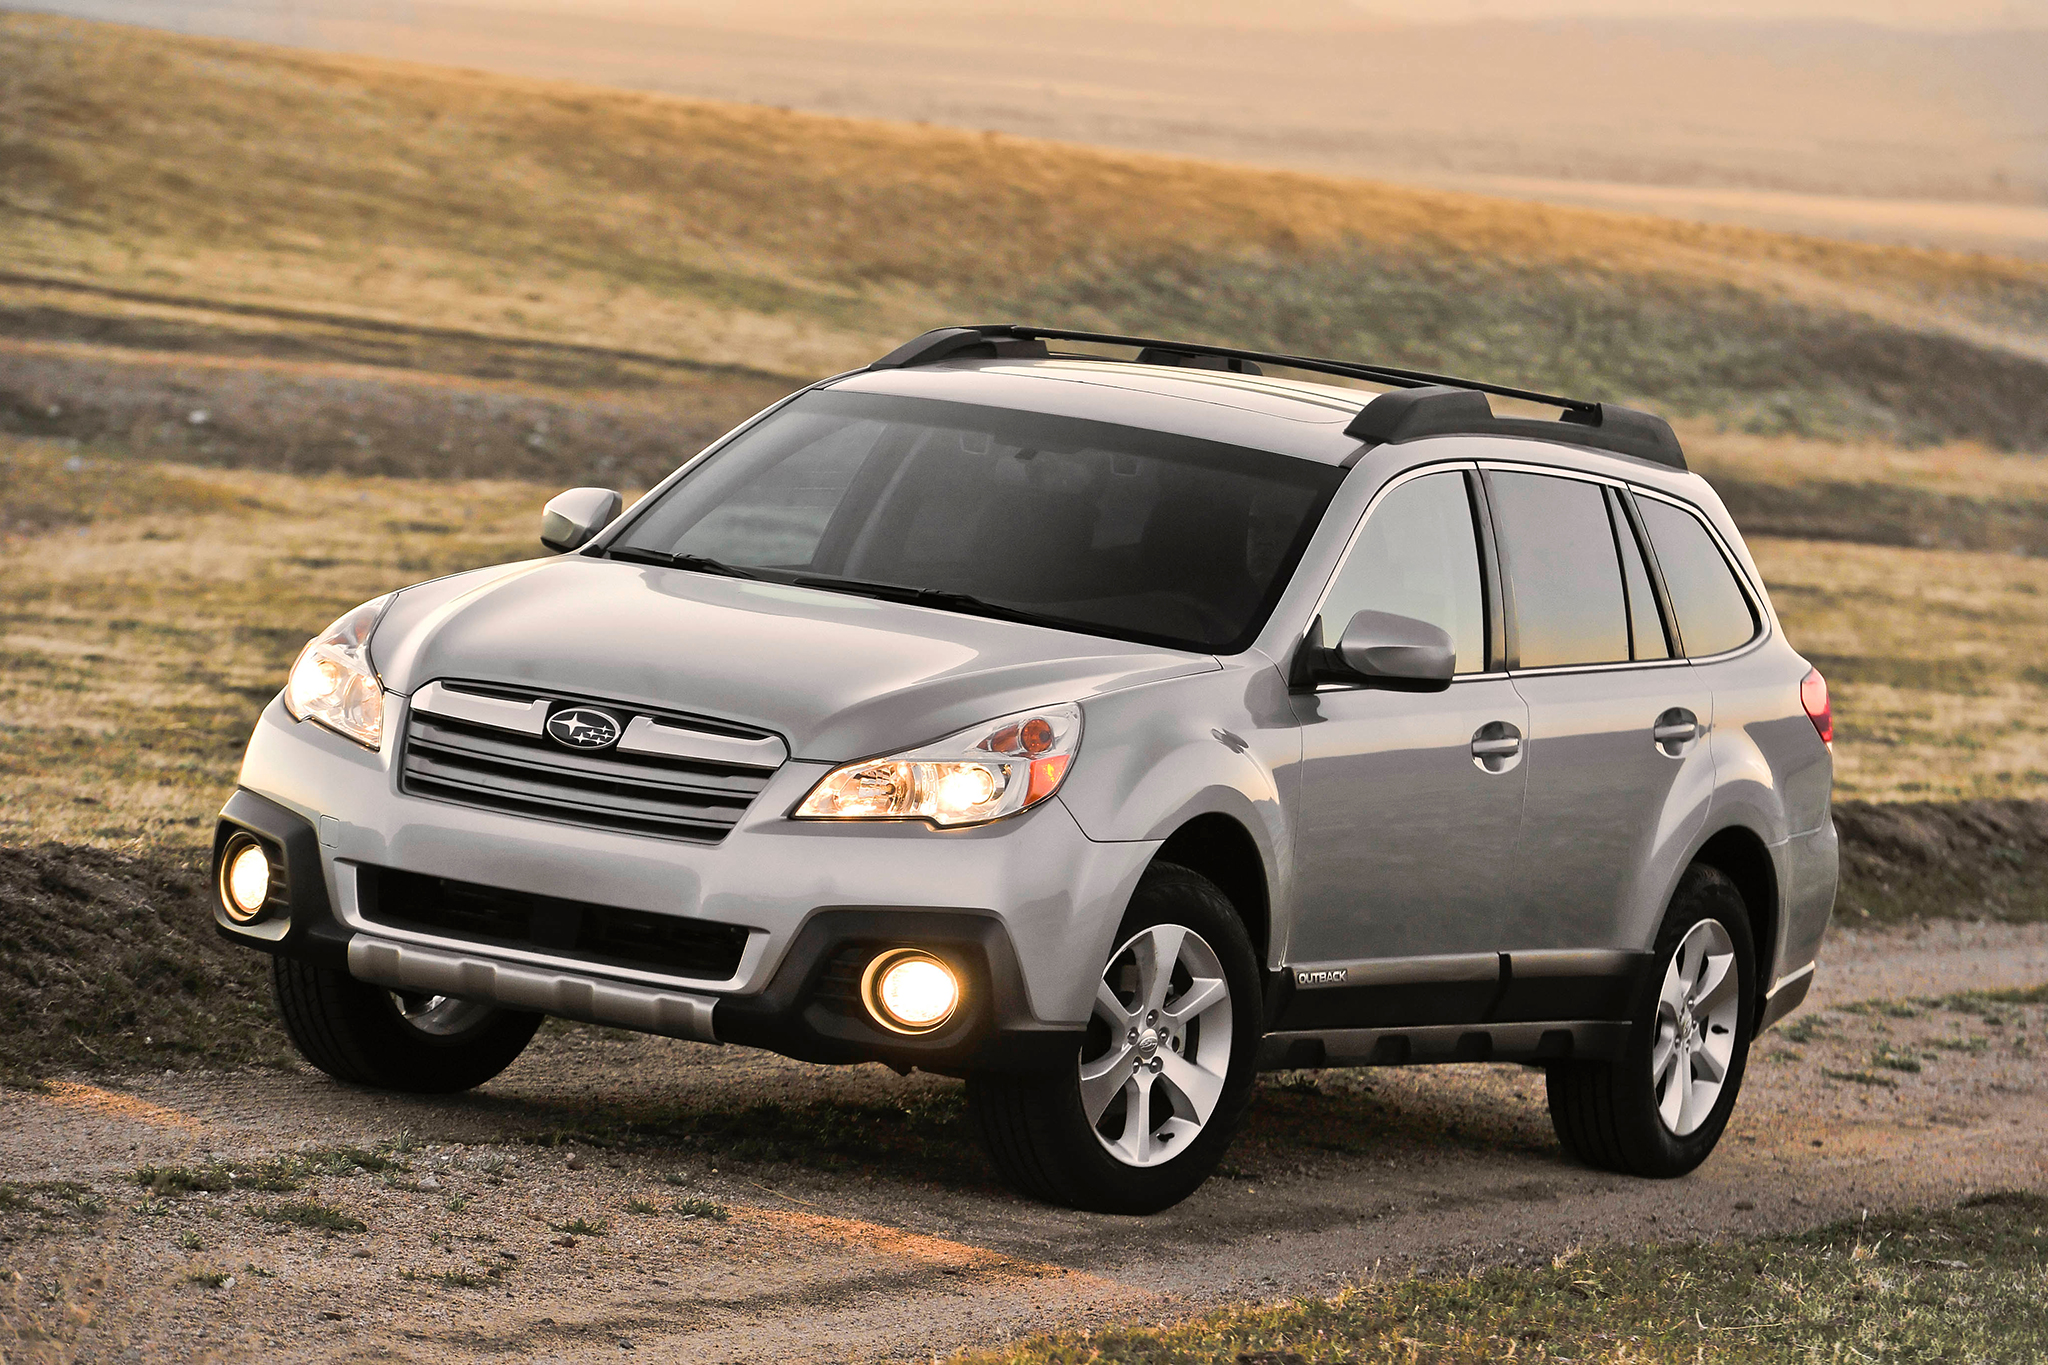 2013 Subaru Outback Photos Informations Articles Legacy Fuse Box Location 15